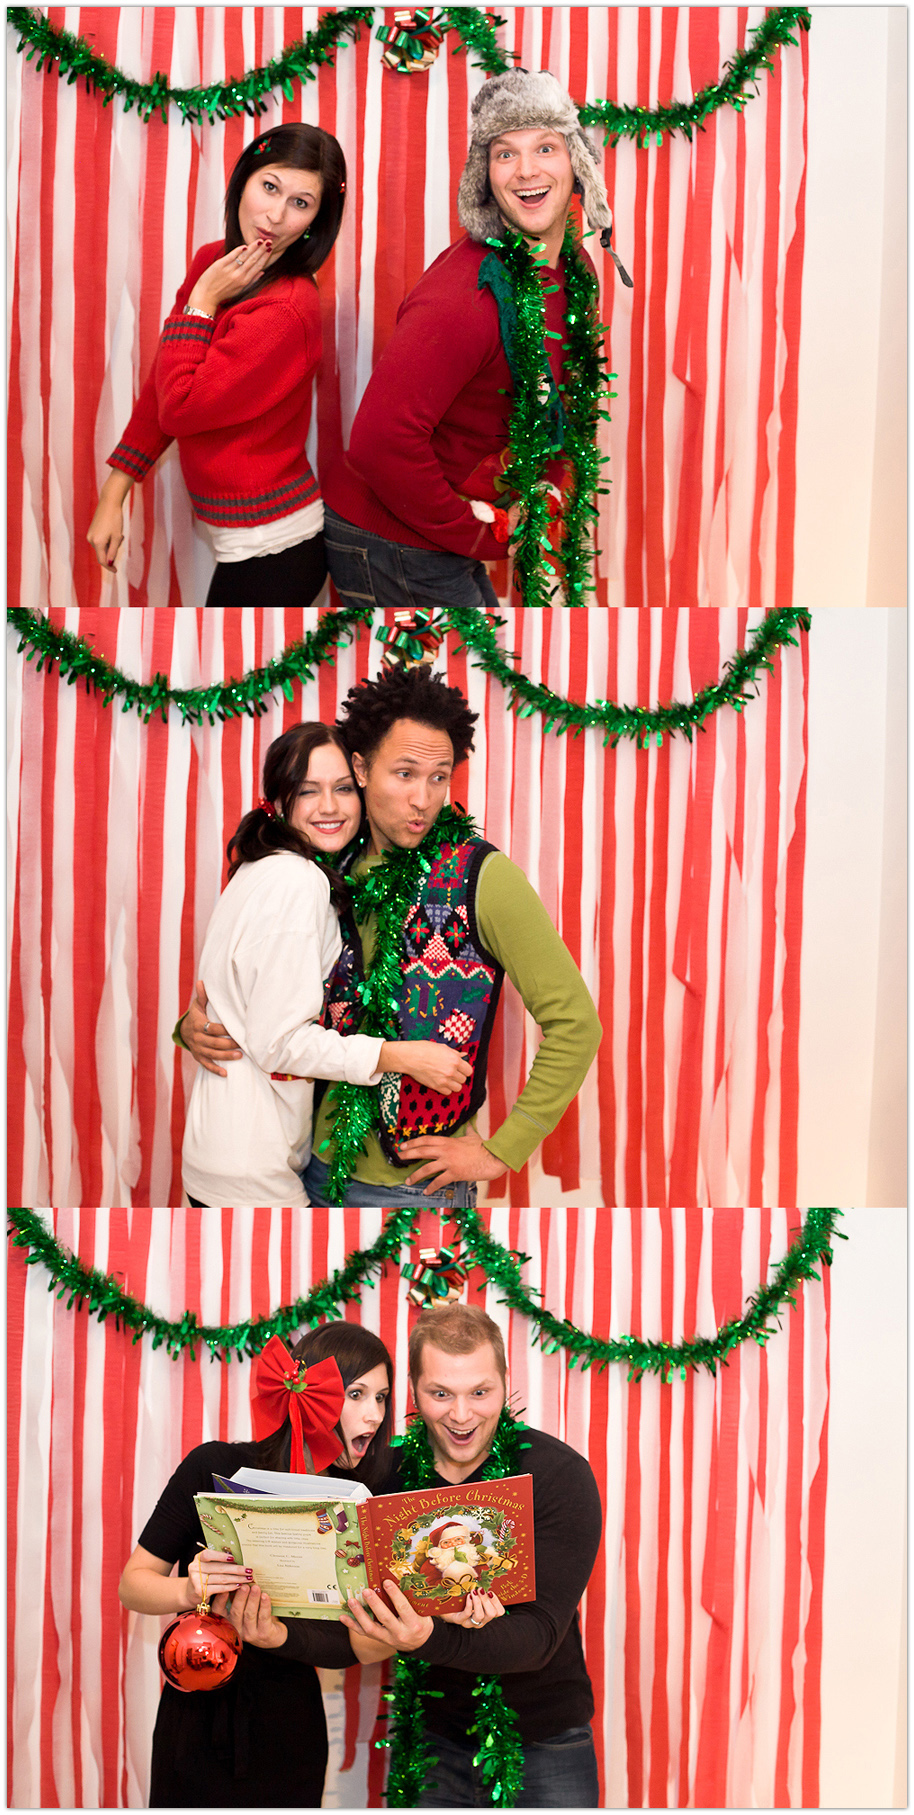 Christmas Sweater Photobooth Mikaela Ruth